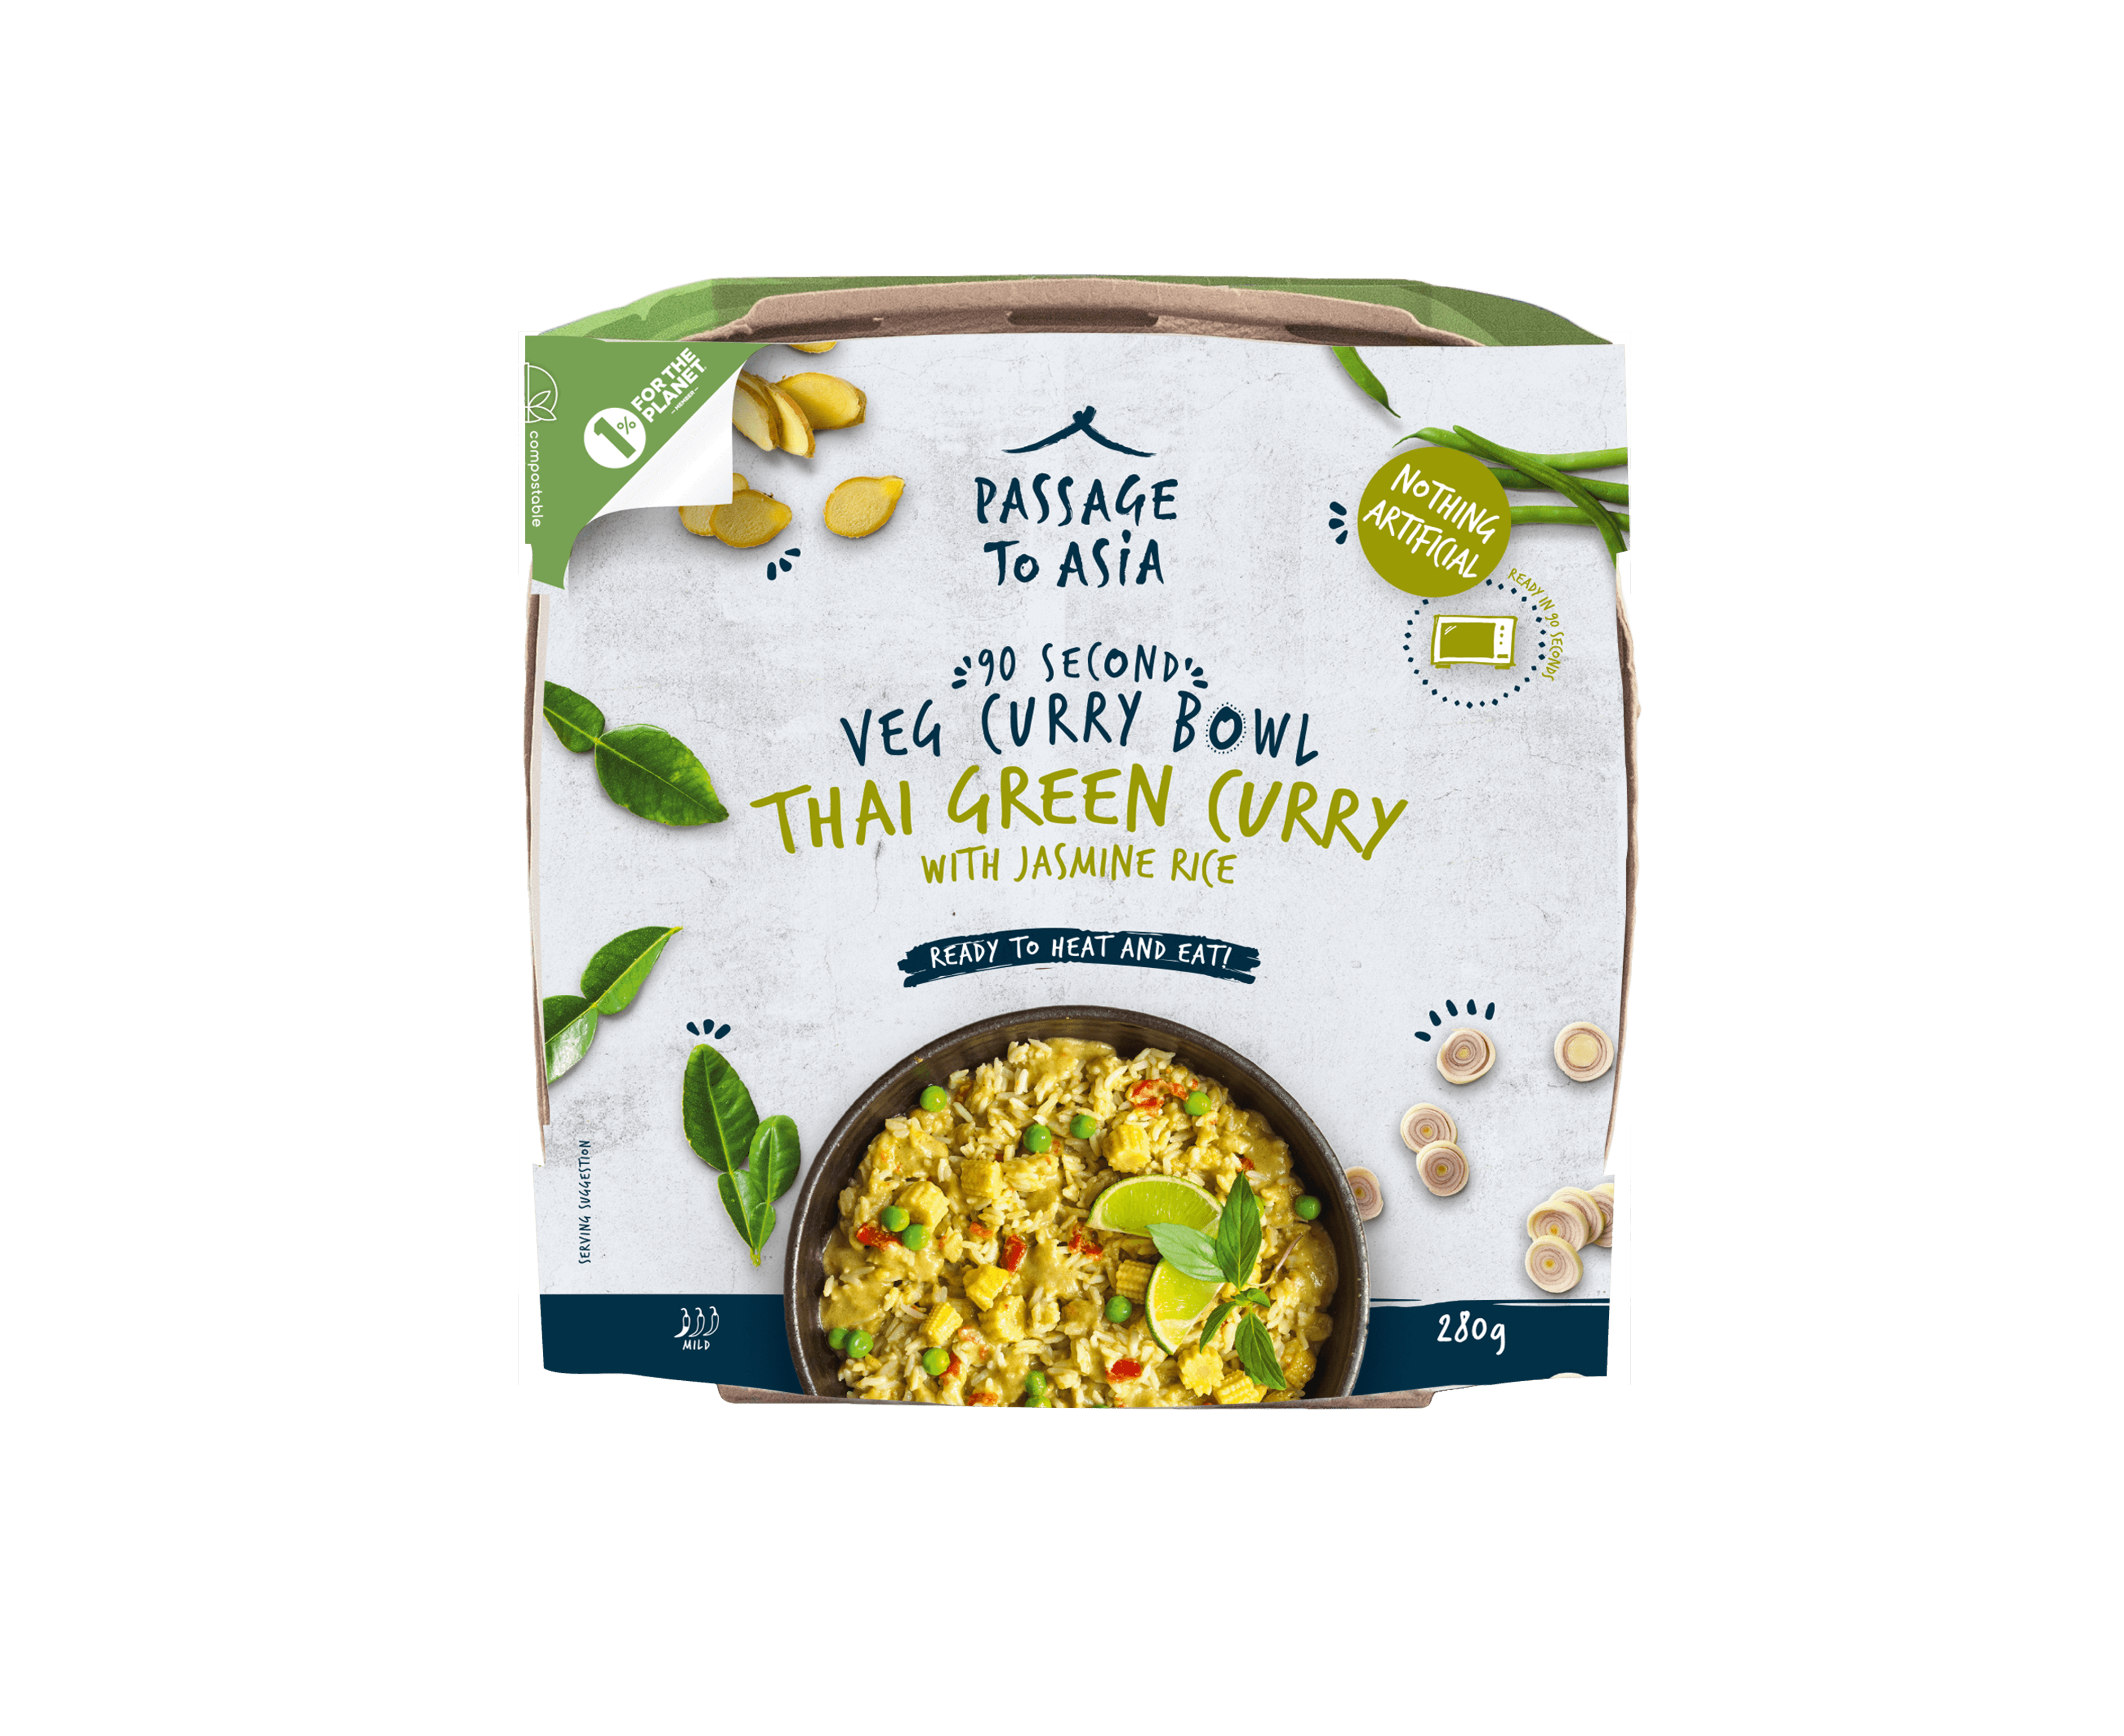 Green Thai Curry Bowl from the Passage to Asia Veg Curry Bowls Range